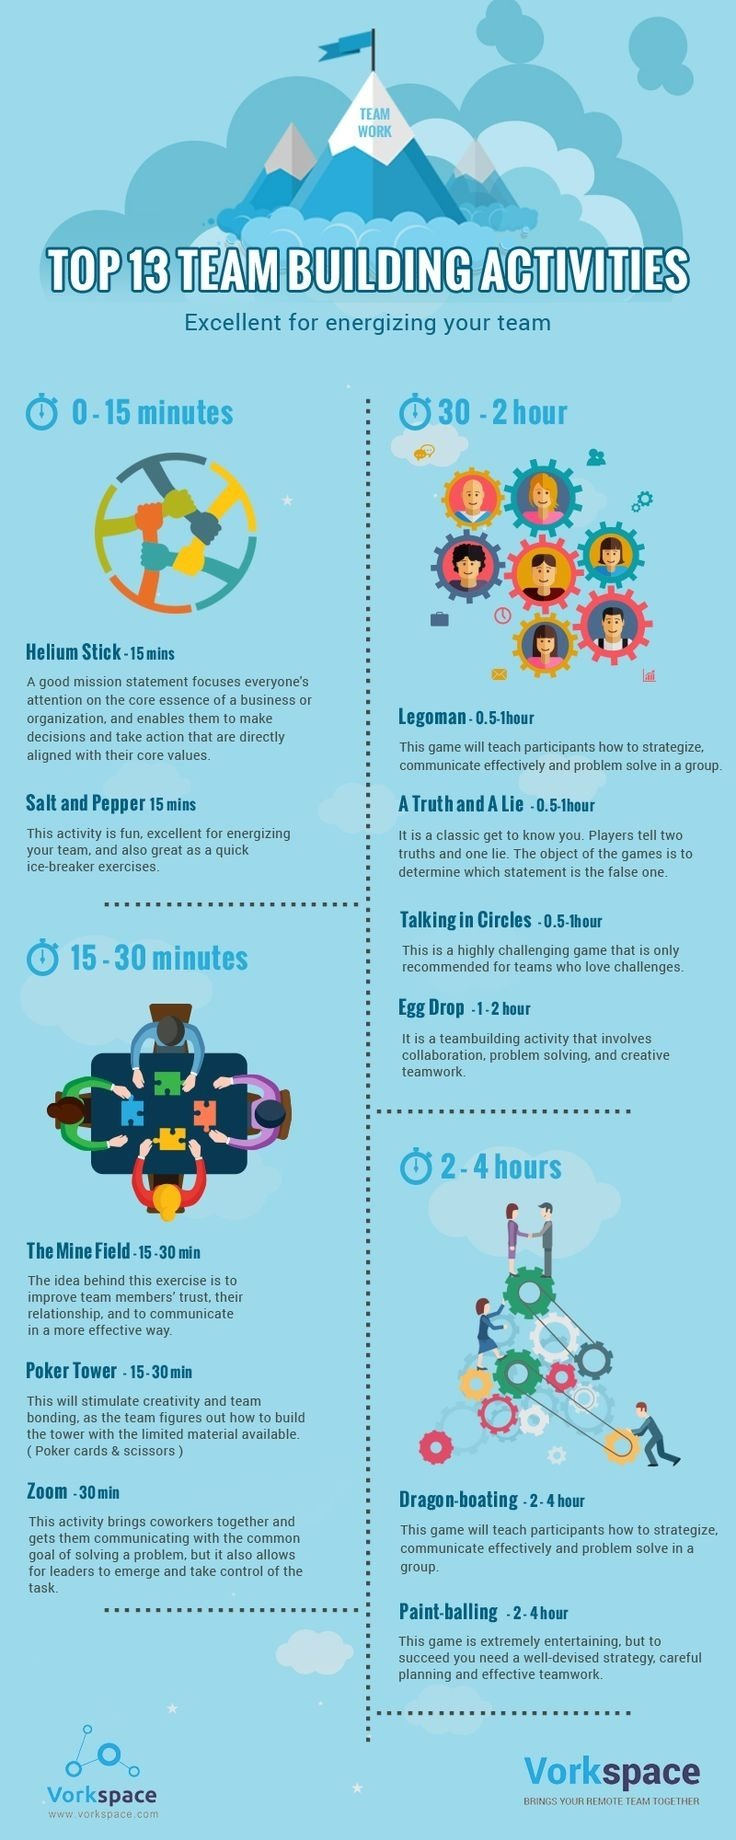 10 Fabulous Team Building Ideas For The Workplace 889 best teambuilding activities images on pinterest mandalas 2 2020